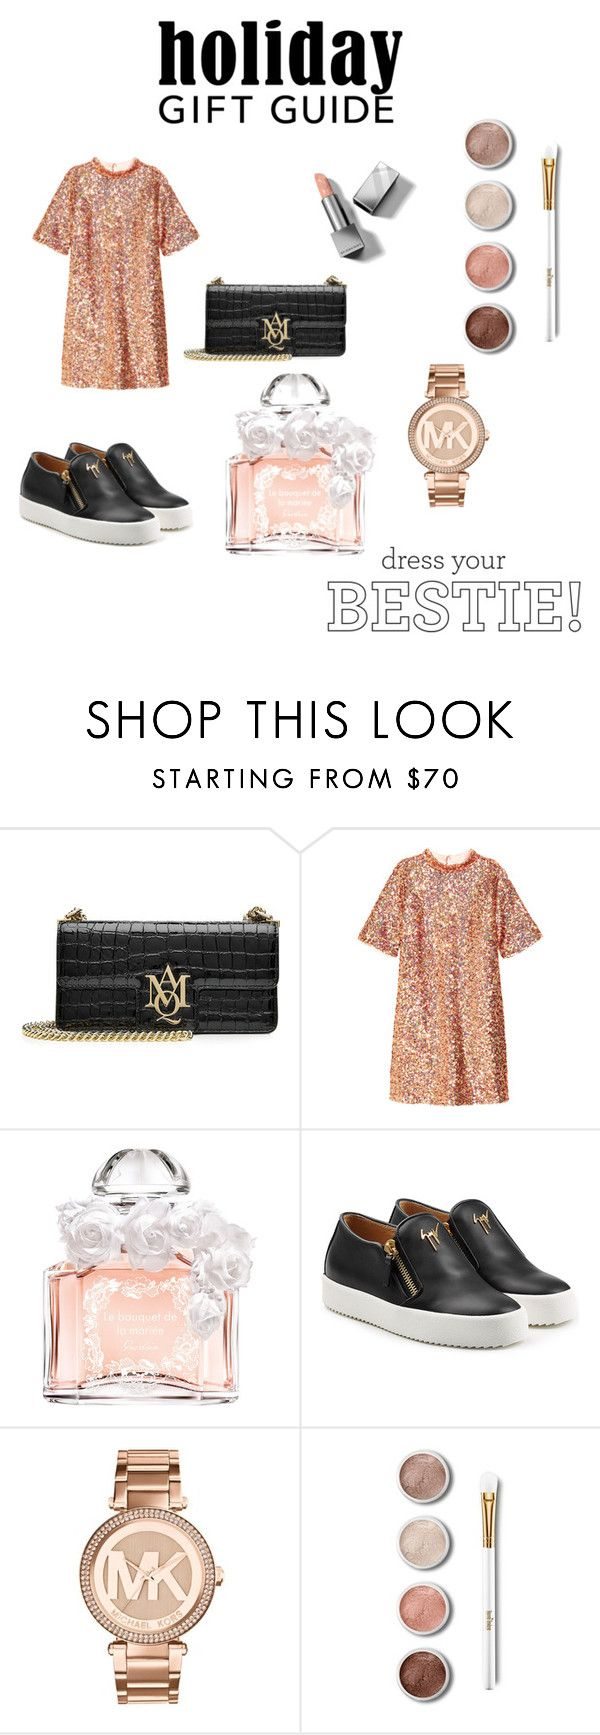 """""""Holiday gift guide"""" by rea-godo ❤ liked on Polyvore featuring Alexander McQueen, Guerlain, Giuseppe Zanotti, Michael Kors, Terre Mère and Burberry"""